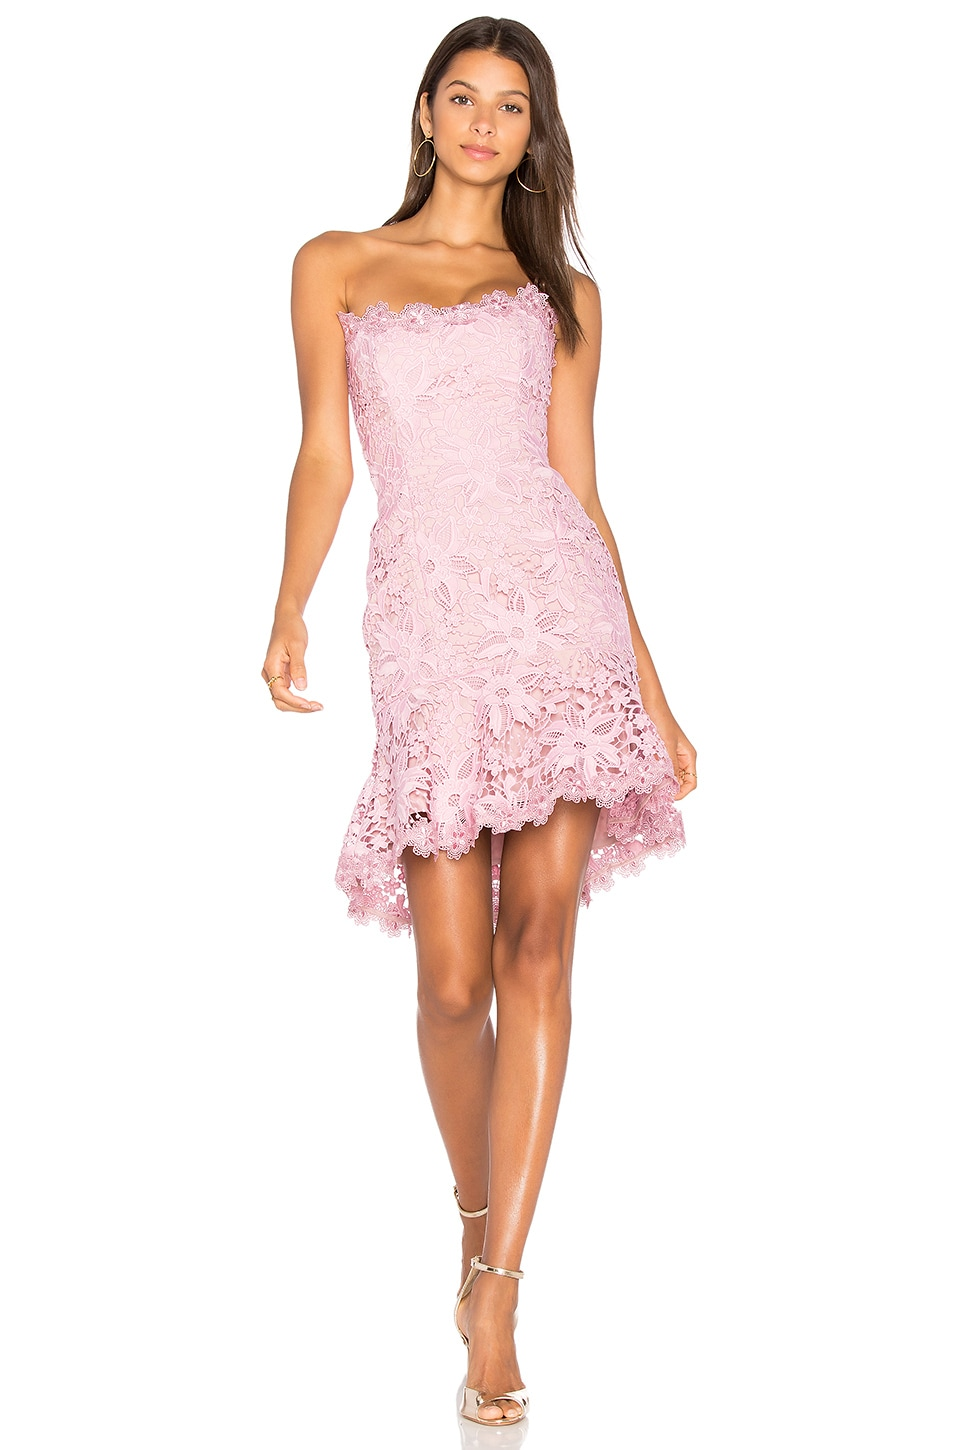 NICHOLAS Bellflower Mini Dress in Peony Pink